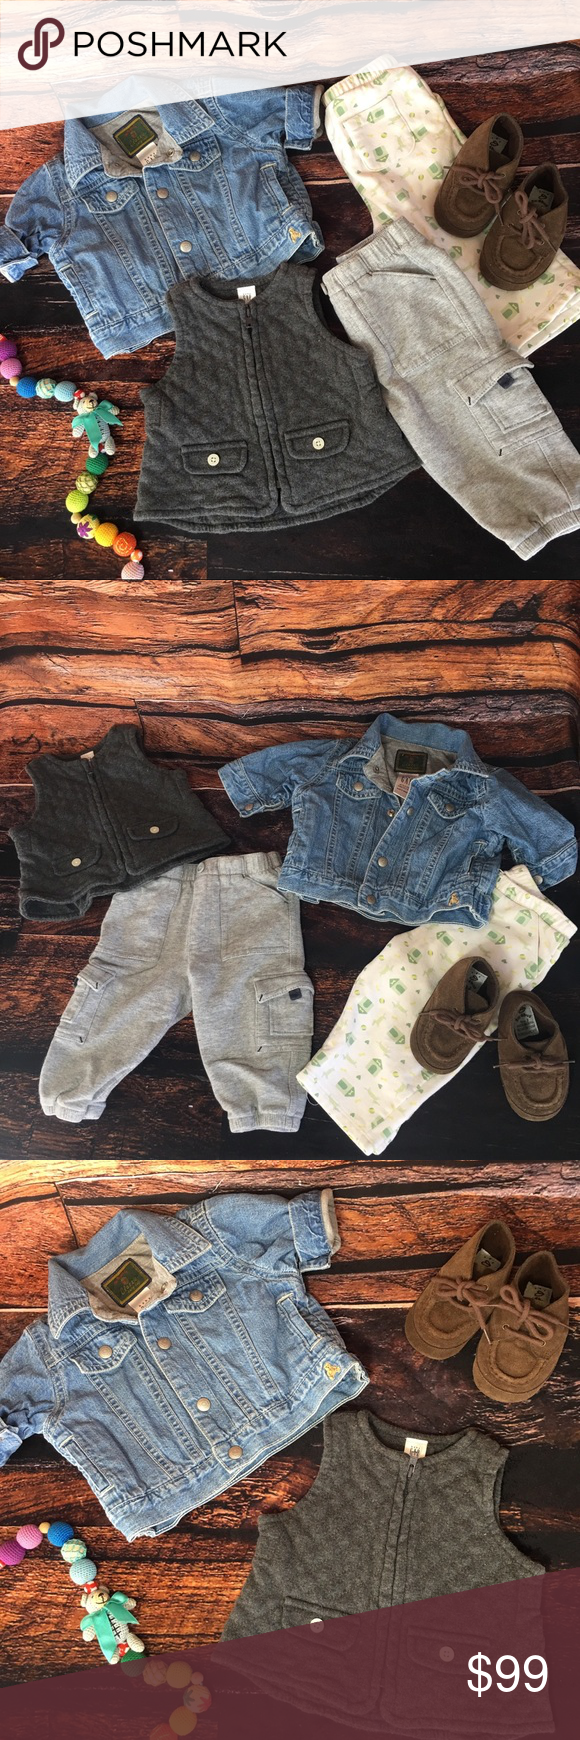 261587c61 Baby Gap Lot Denim Jacket Cargo Boy Pants 3mo 6mo Picturing a lined jean  coat,